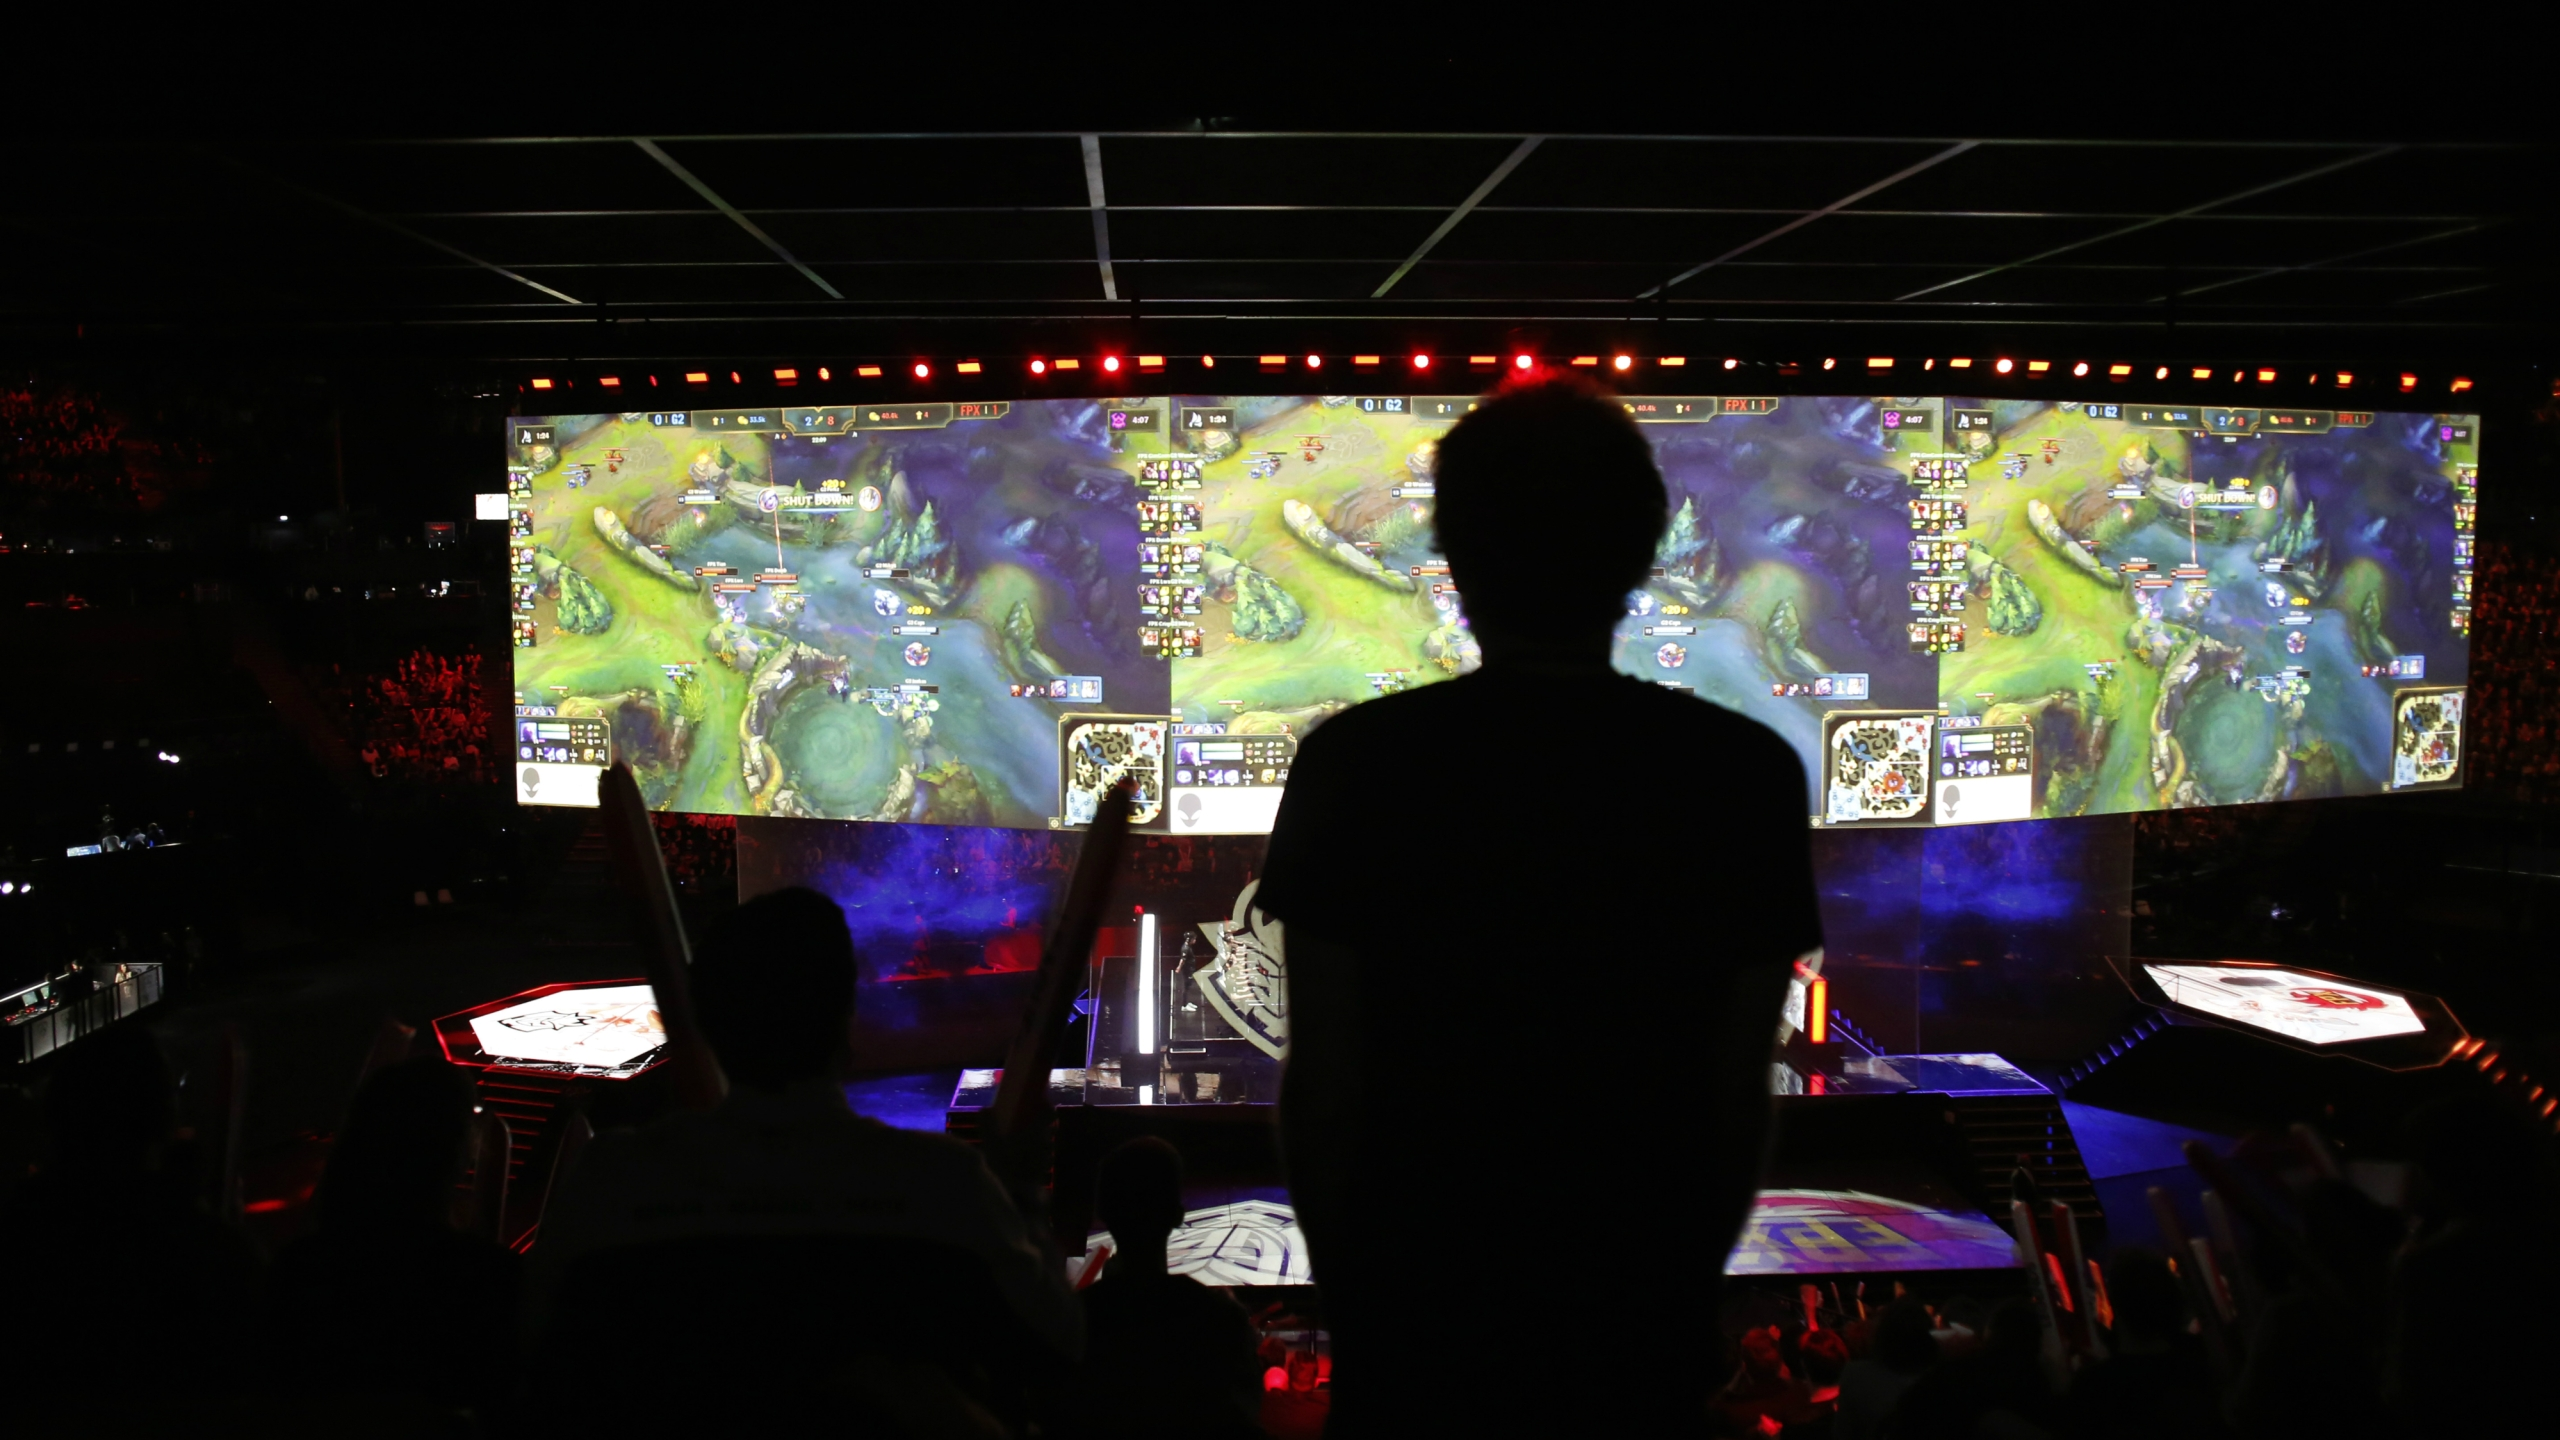 A silhouette outlined against huge screens displaying a League of Legends tournament